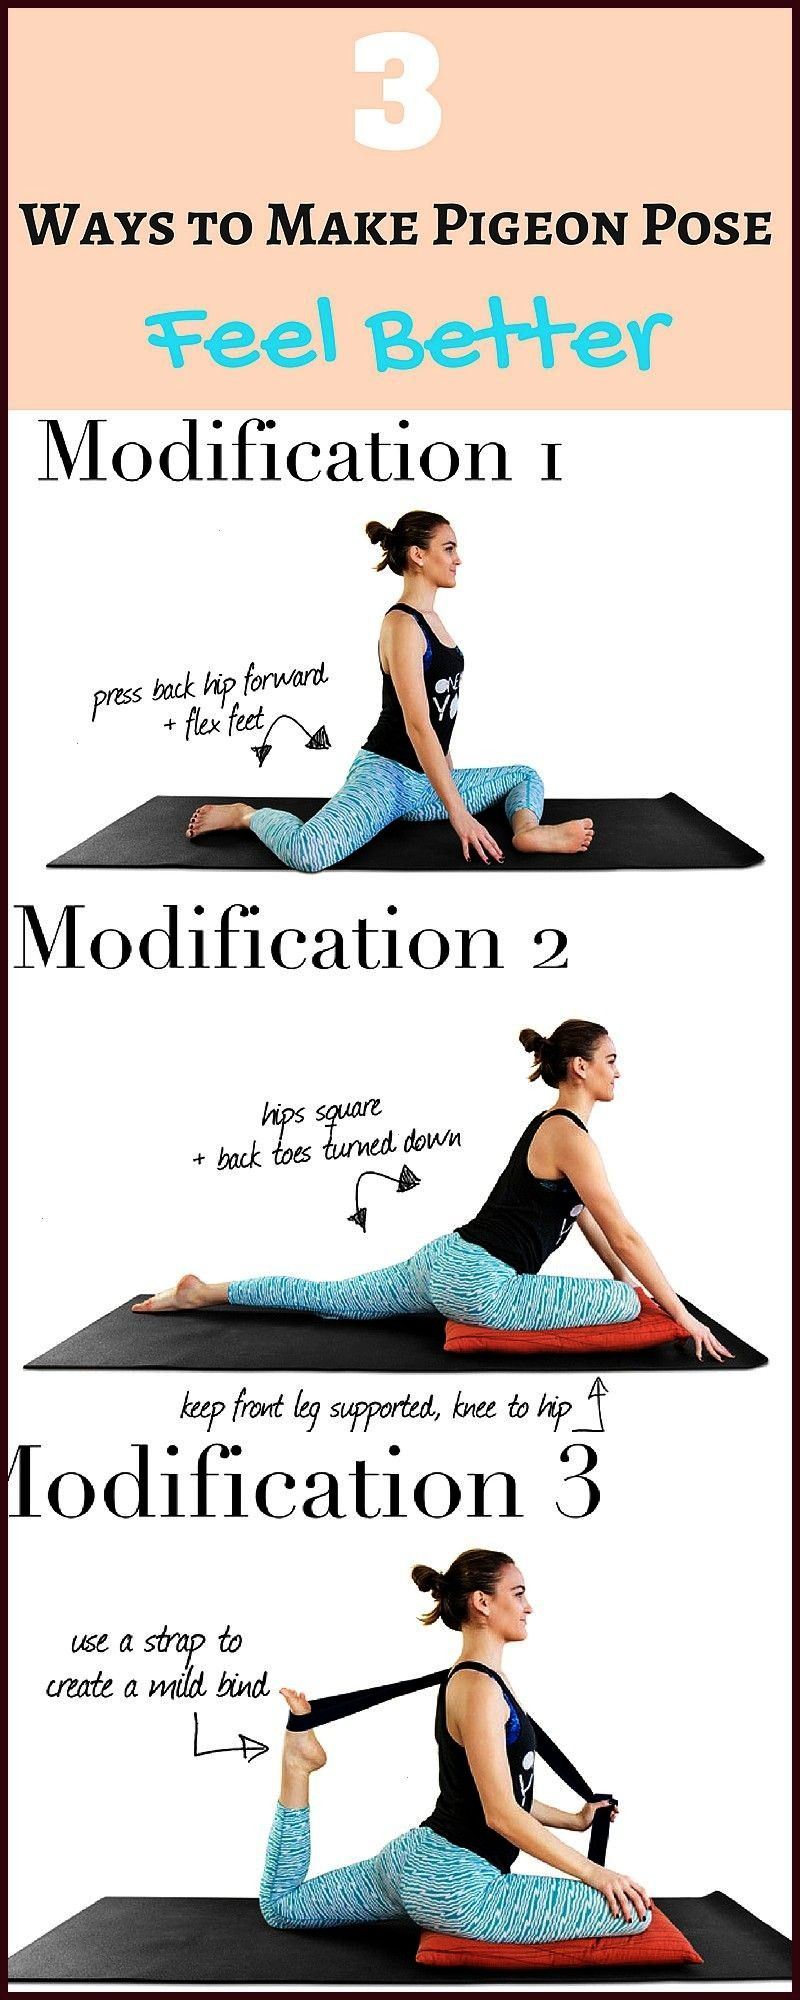 is an excellent hip opener practice that you should feel good about But if you feel awkward about it you can feel the magic with some m Pigeon pose is an excellent hip op...